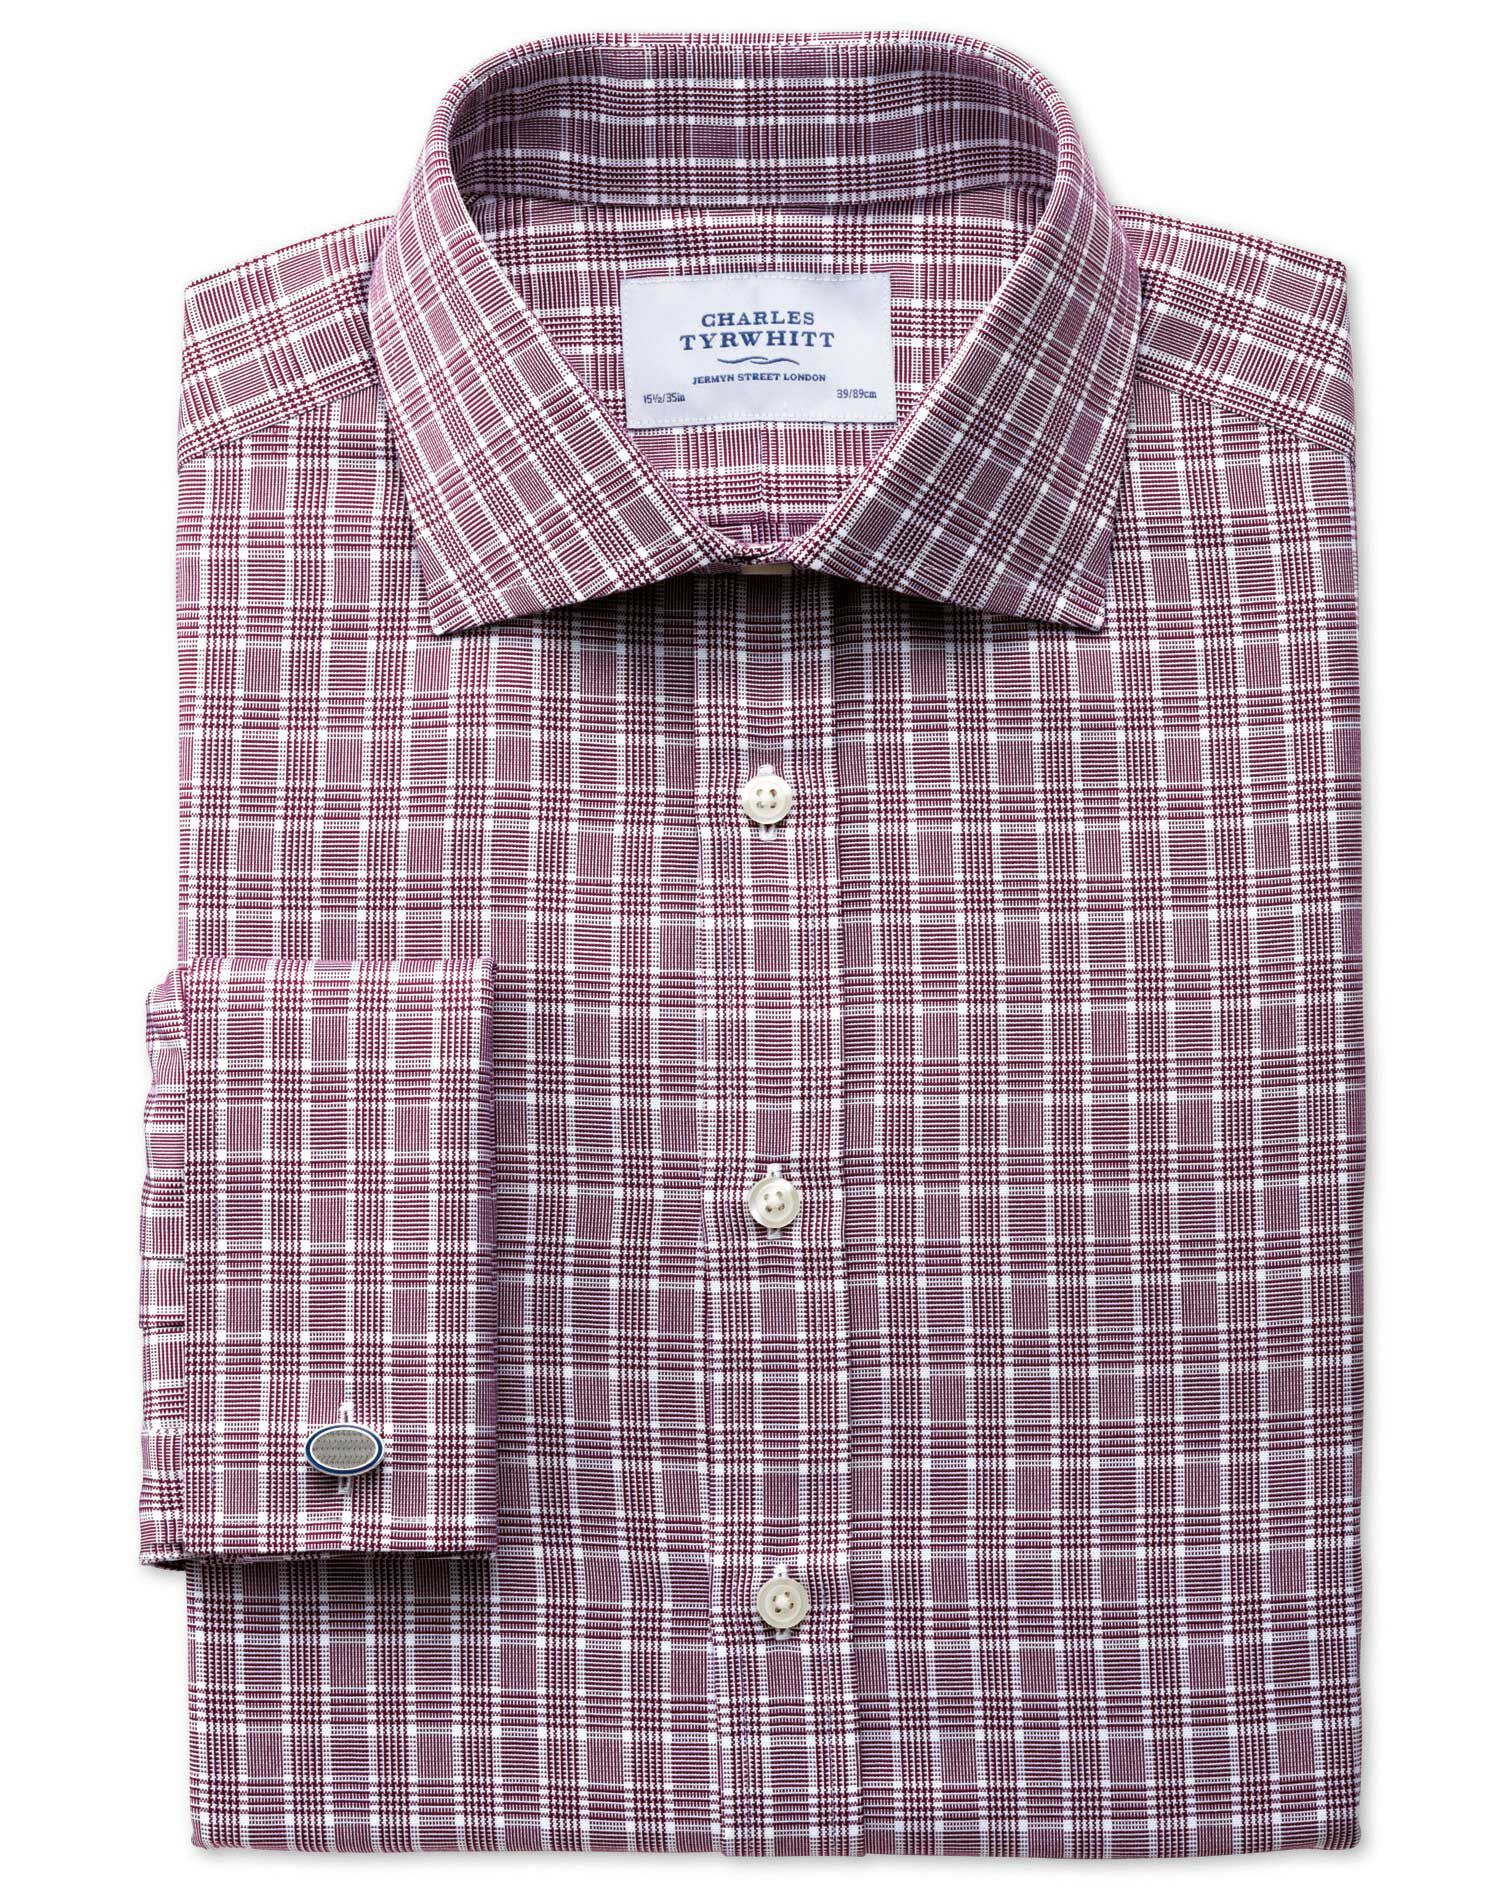 Slim Fit Prince Of Wales Berry Cotton Formal Shirt Single Cuff Size 17.5/34 by Charles Tyrwhitt